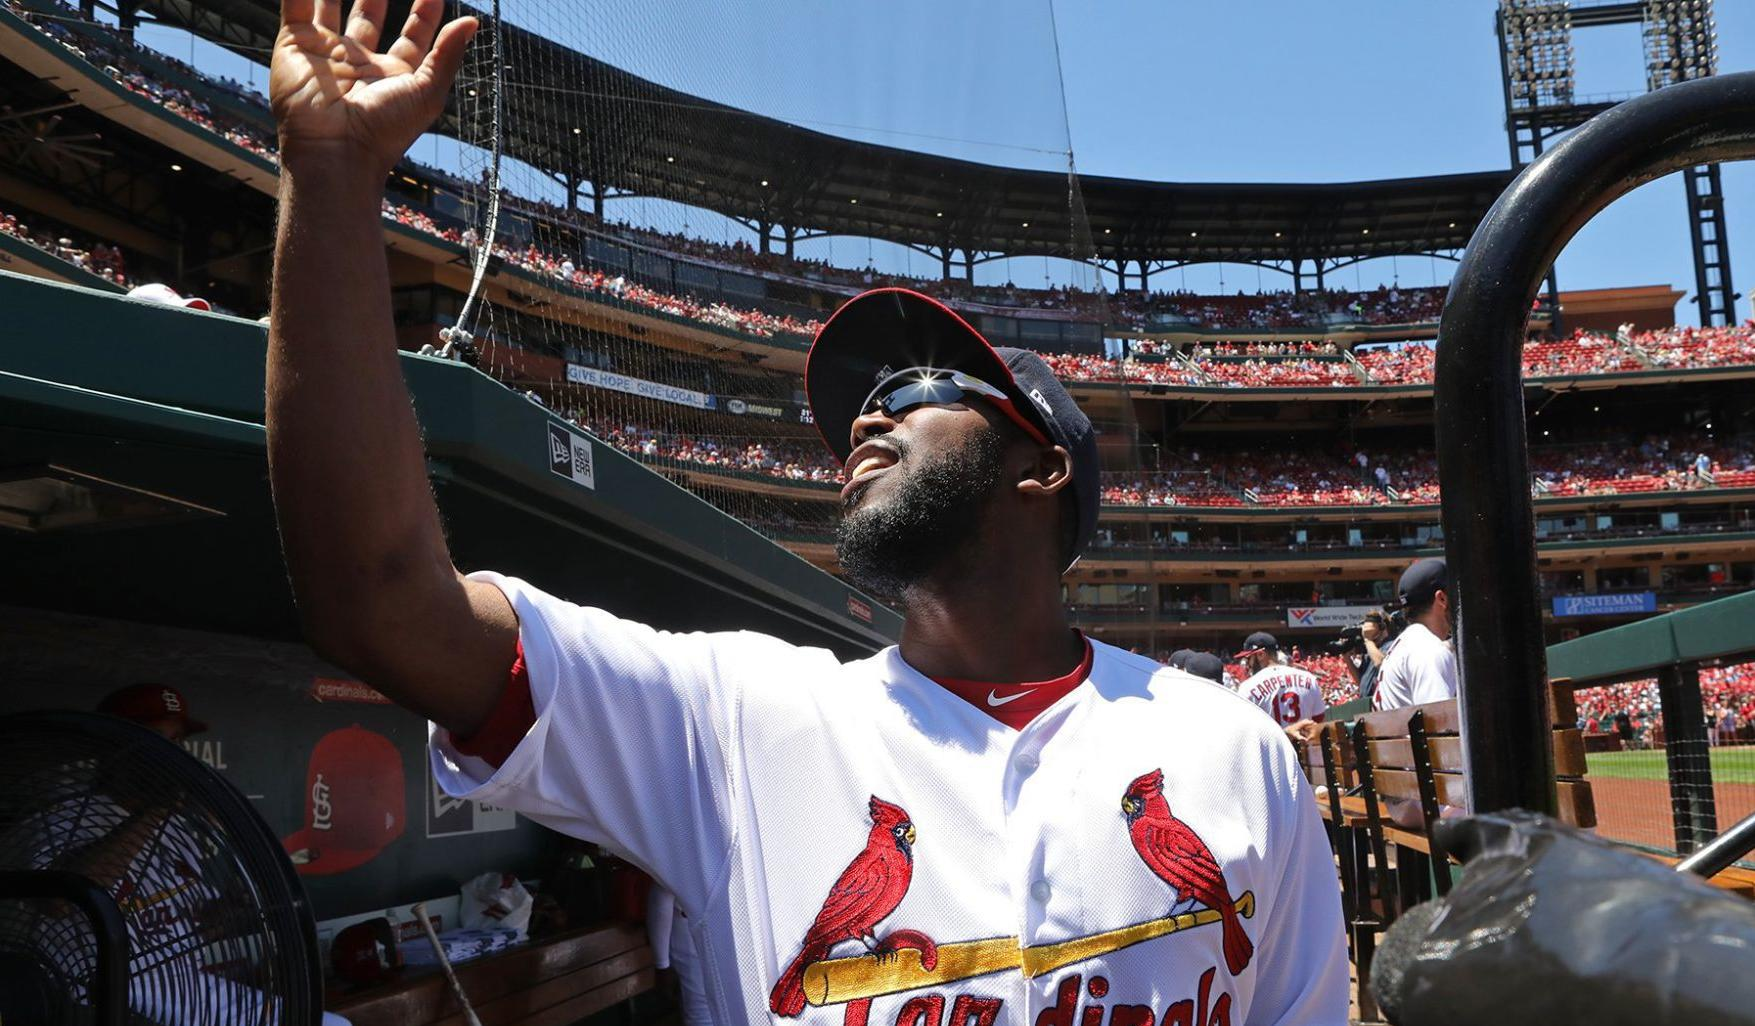 'Depressed' last season, Fowler energized by faith the Cardinals have shown in him